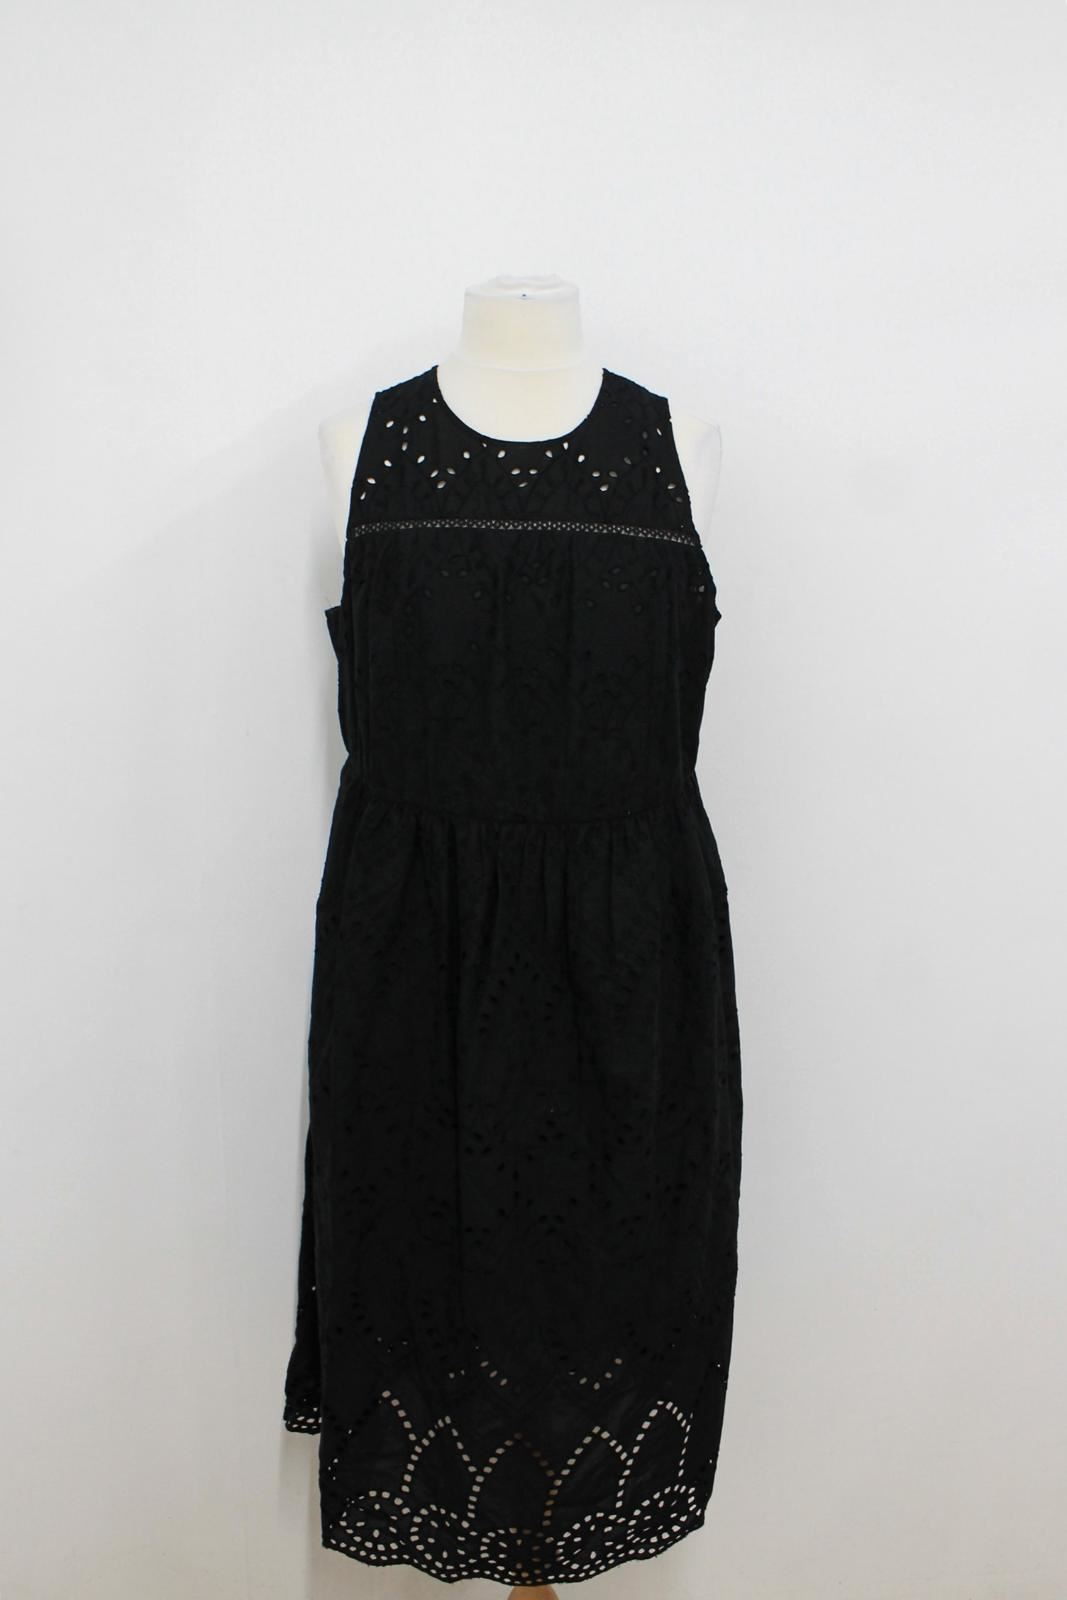 Embroidered Size M Bnwt Collection Sleeveless Dress Crochet amp;s Ladies Black Uk20 qYzY4w